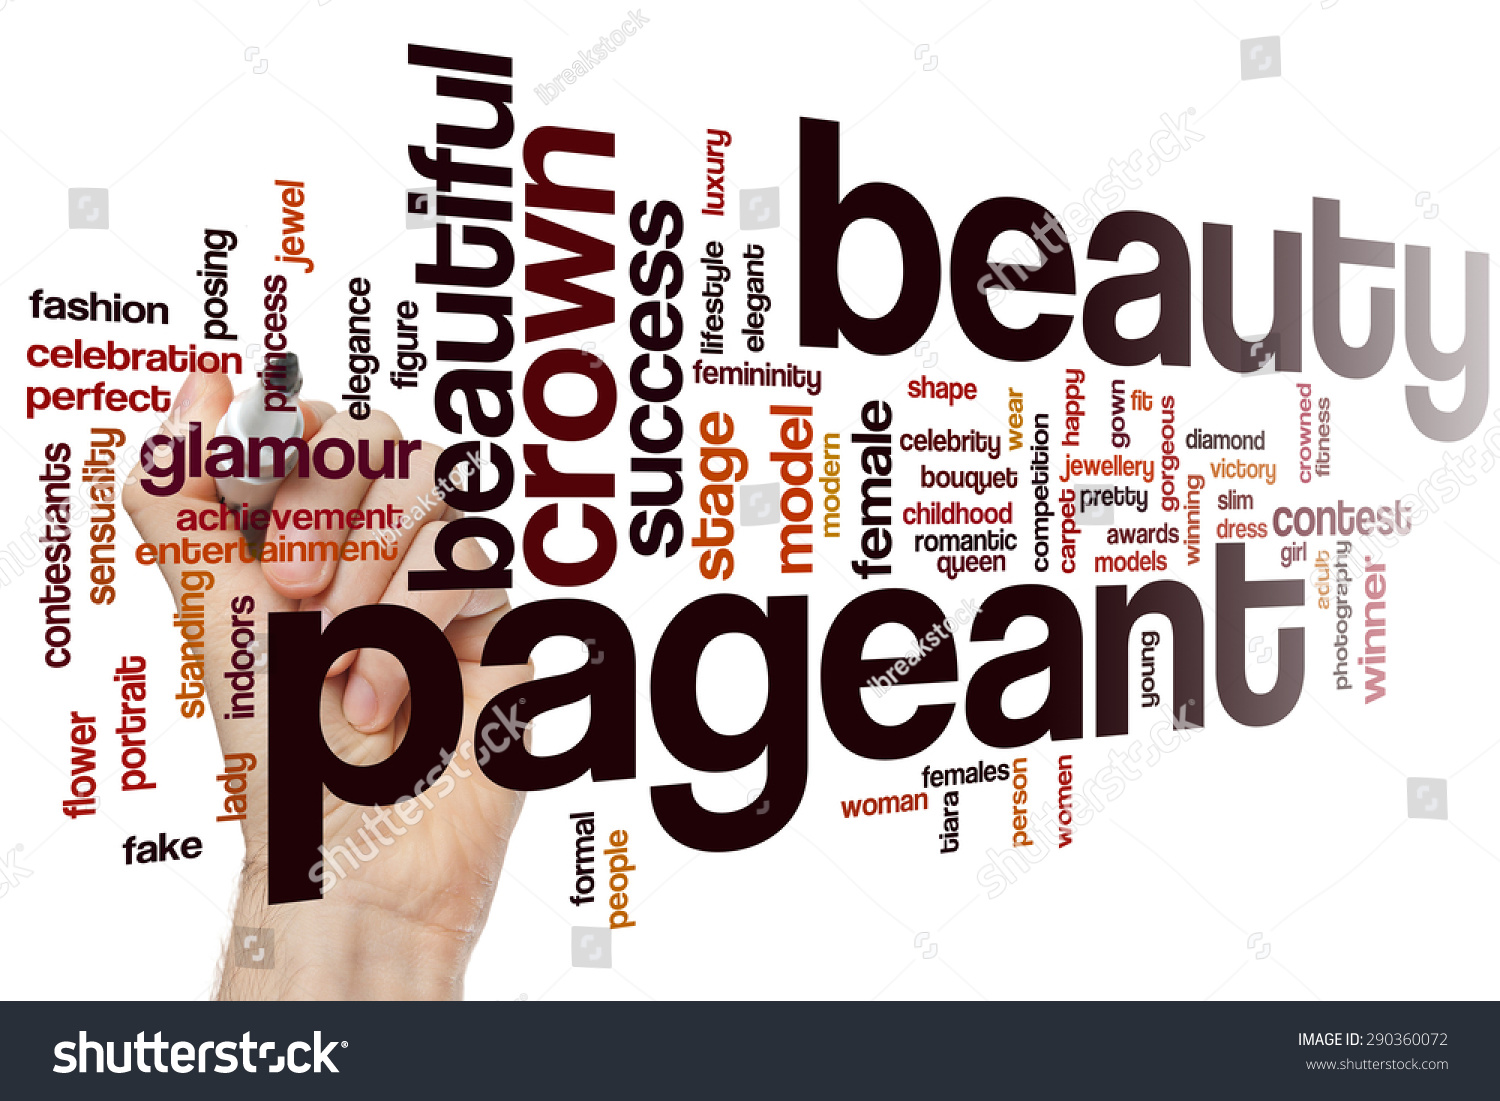 Beauty Pageant Word Cloud Concept Stock Photo 290360072 - Shutterstock